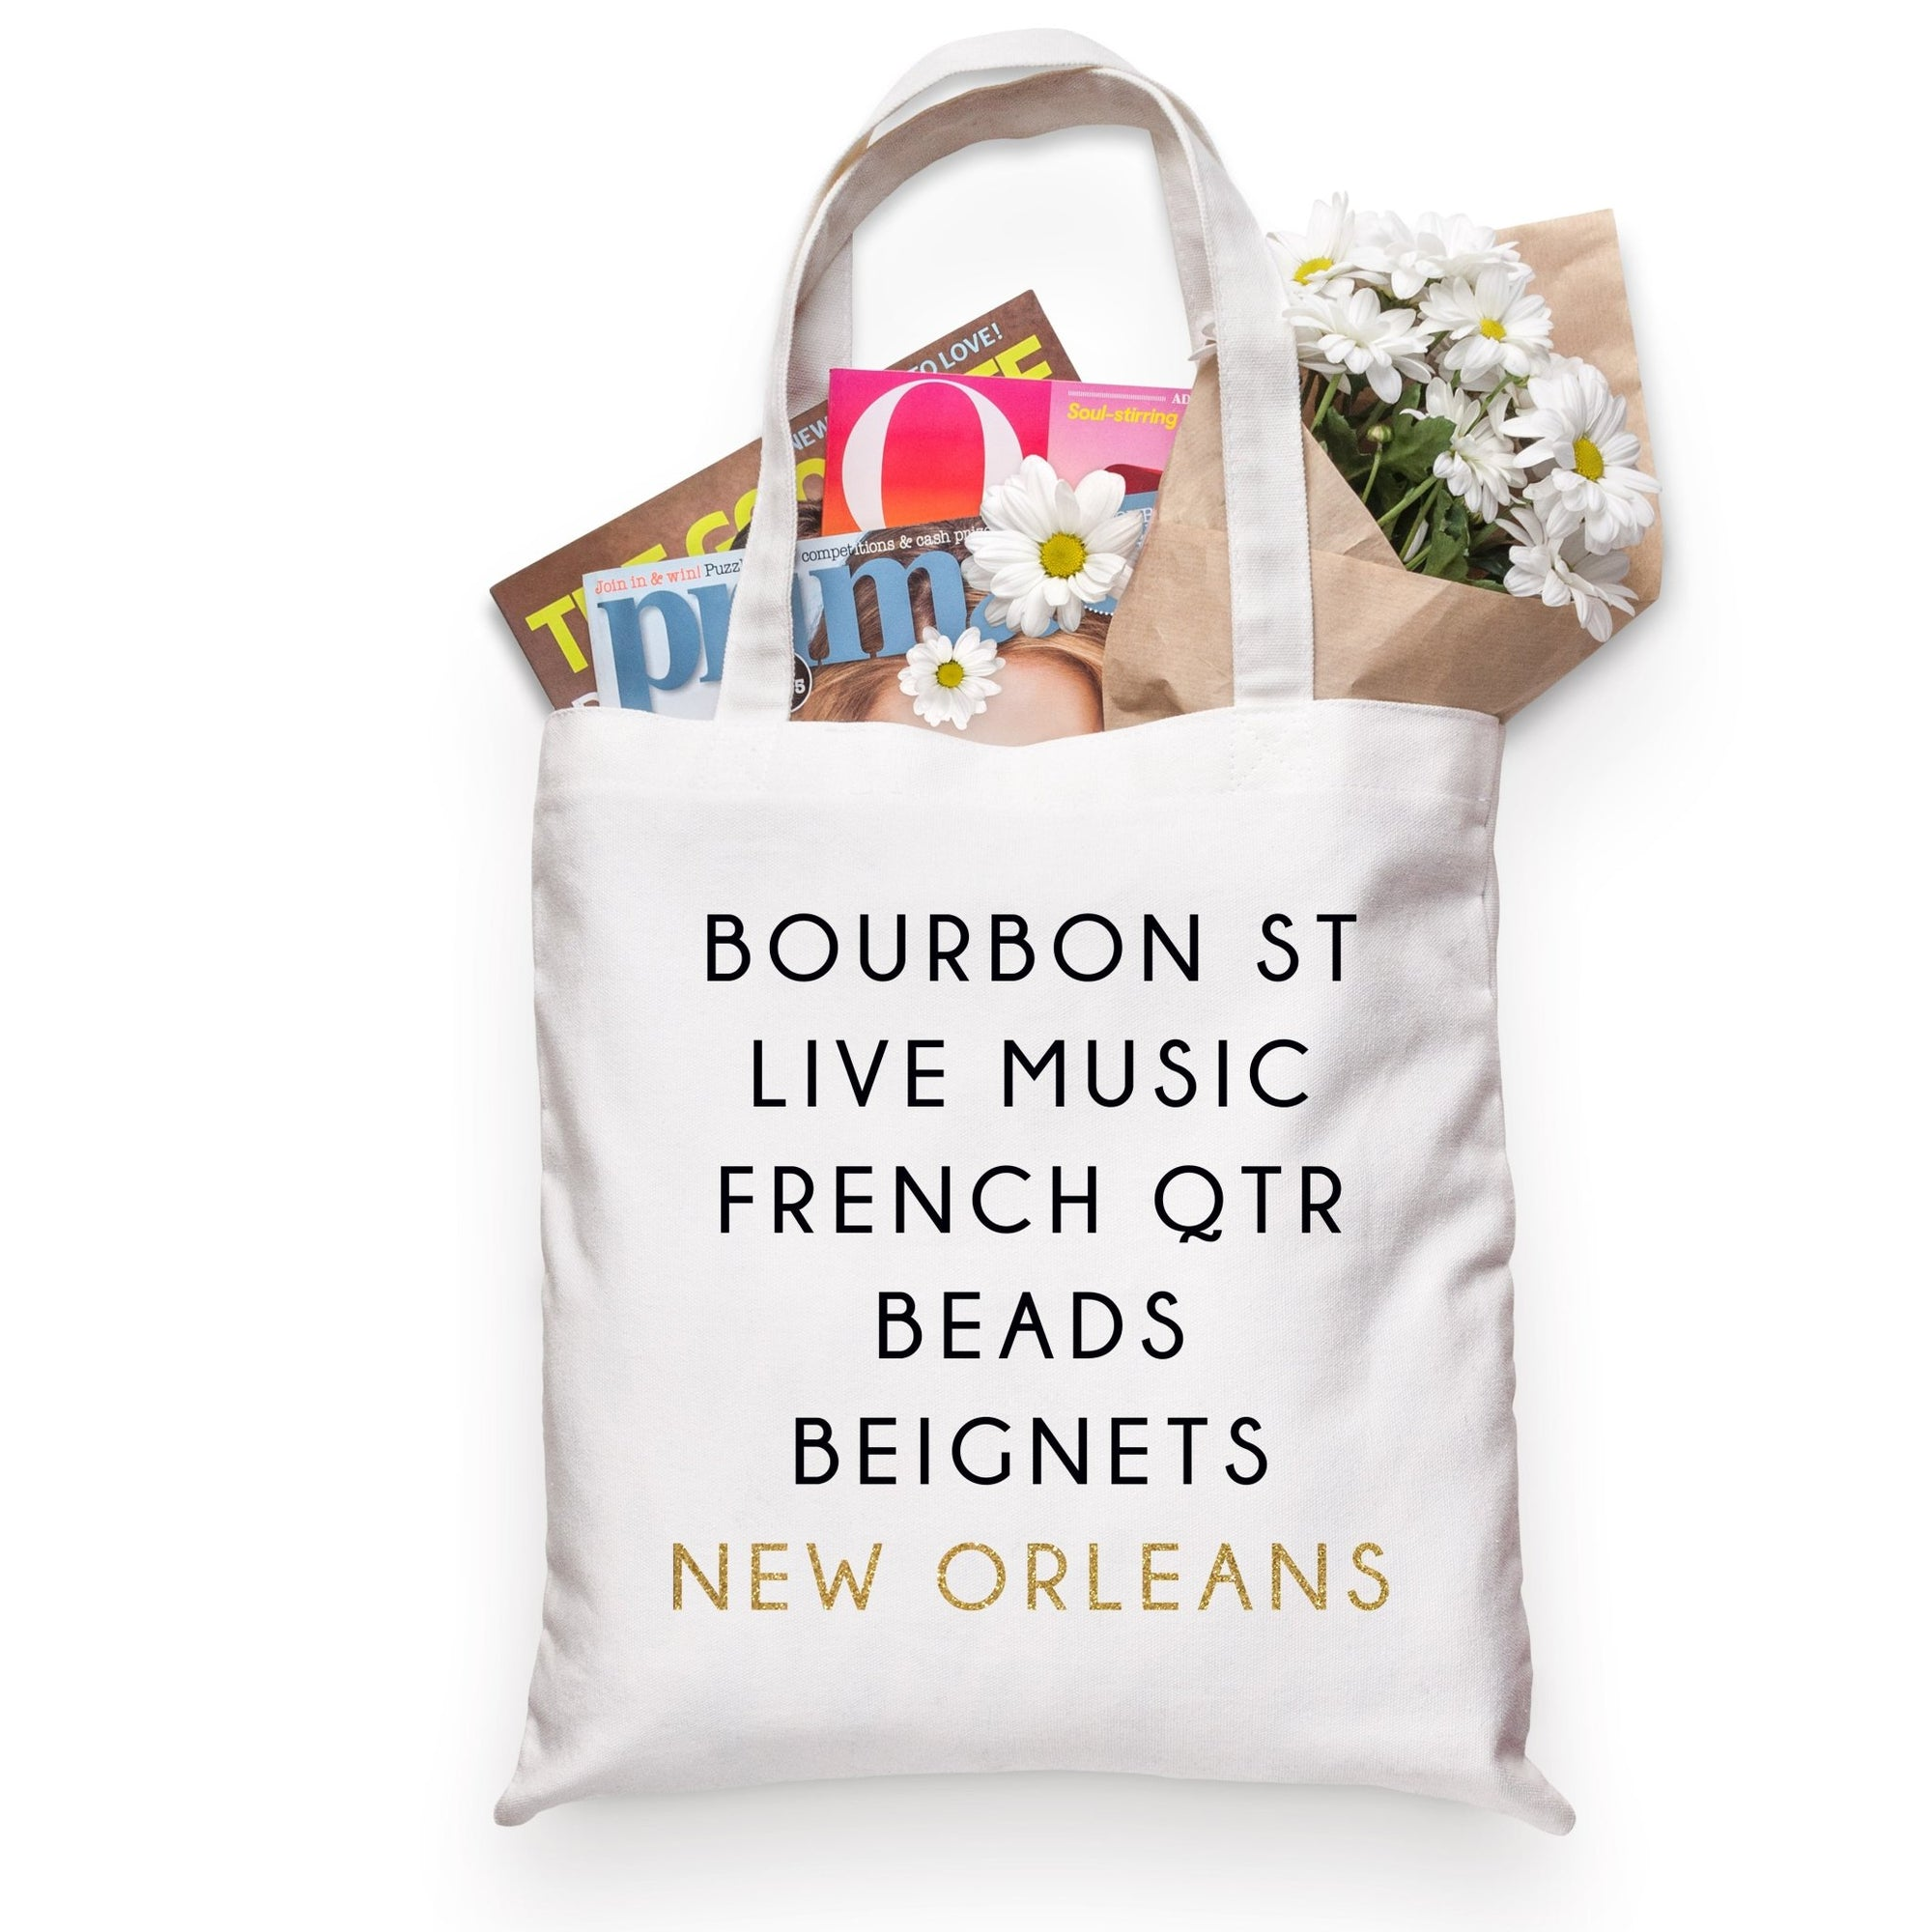 New Orleans City Tote - Sprinkled With Pink #bachelorette #custom #gifts